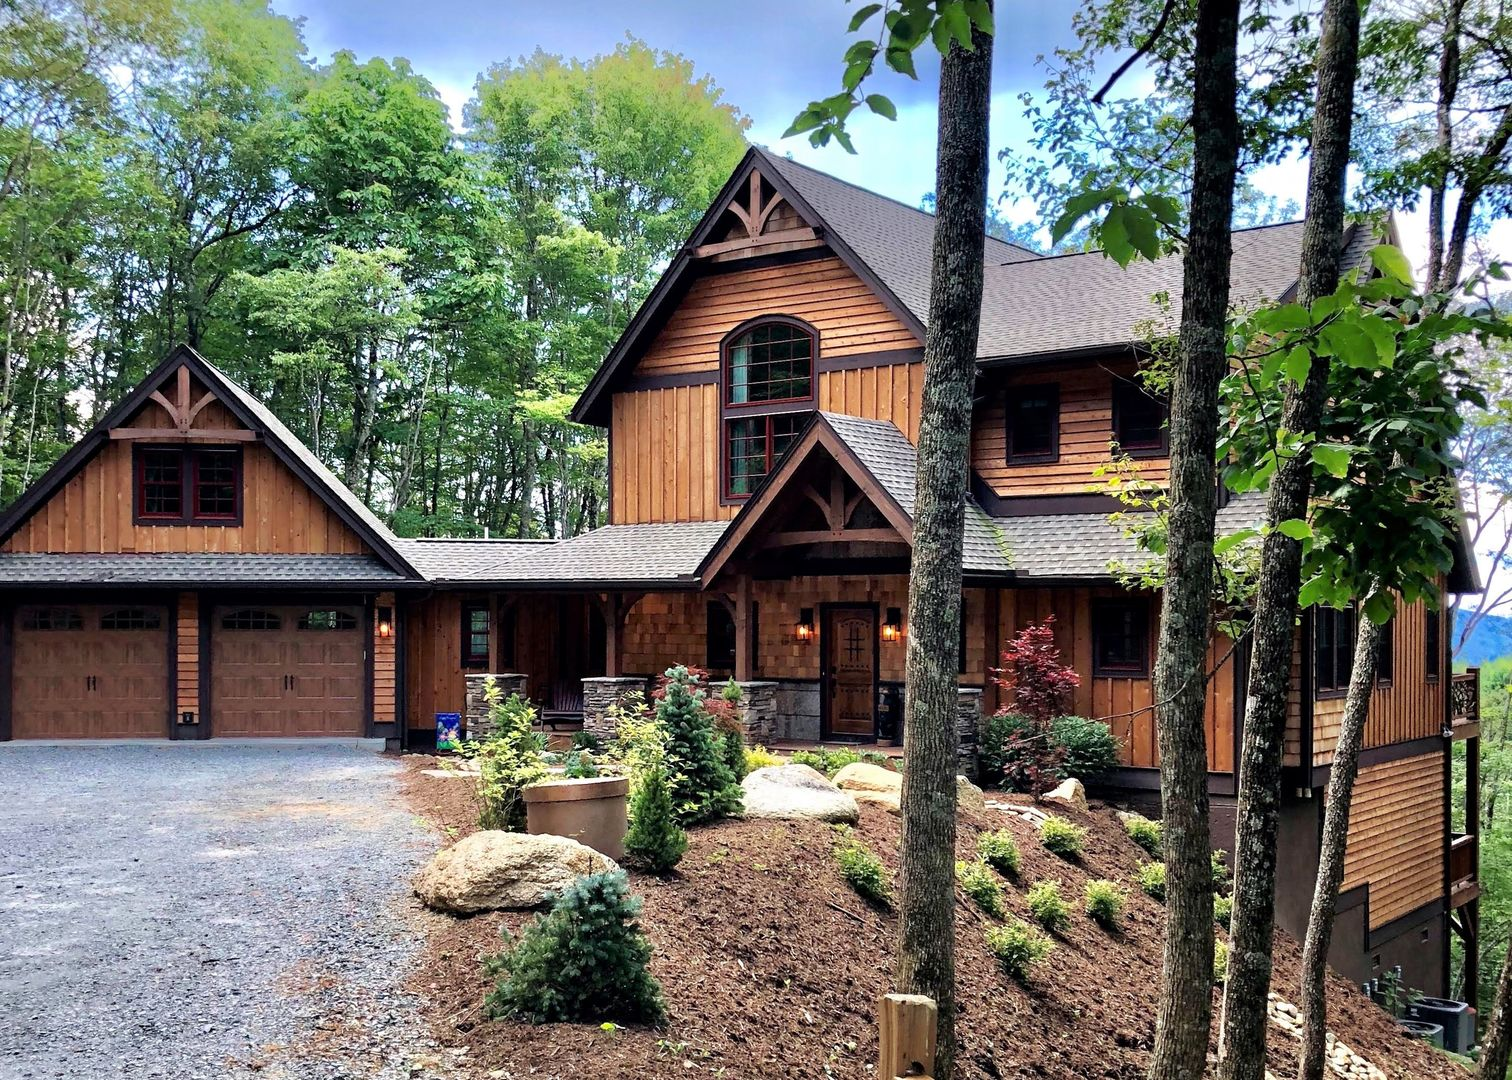 Property Info High Country Vacation Homes Boone Nc Vacation Rentals